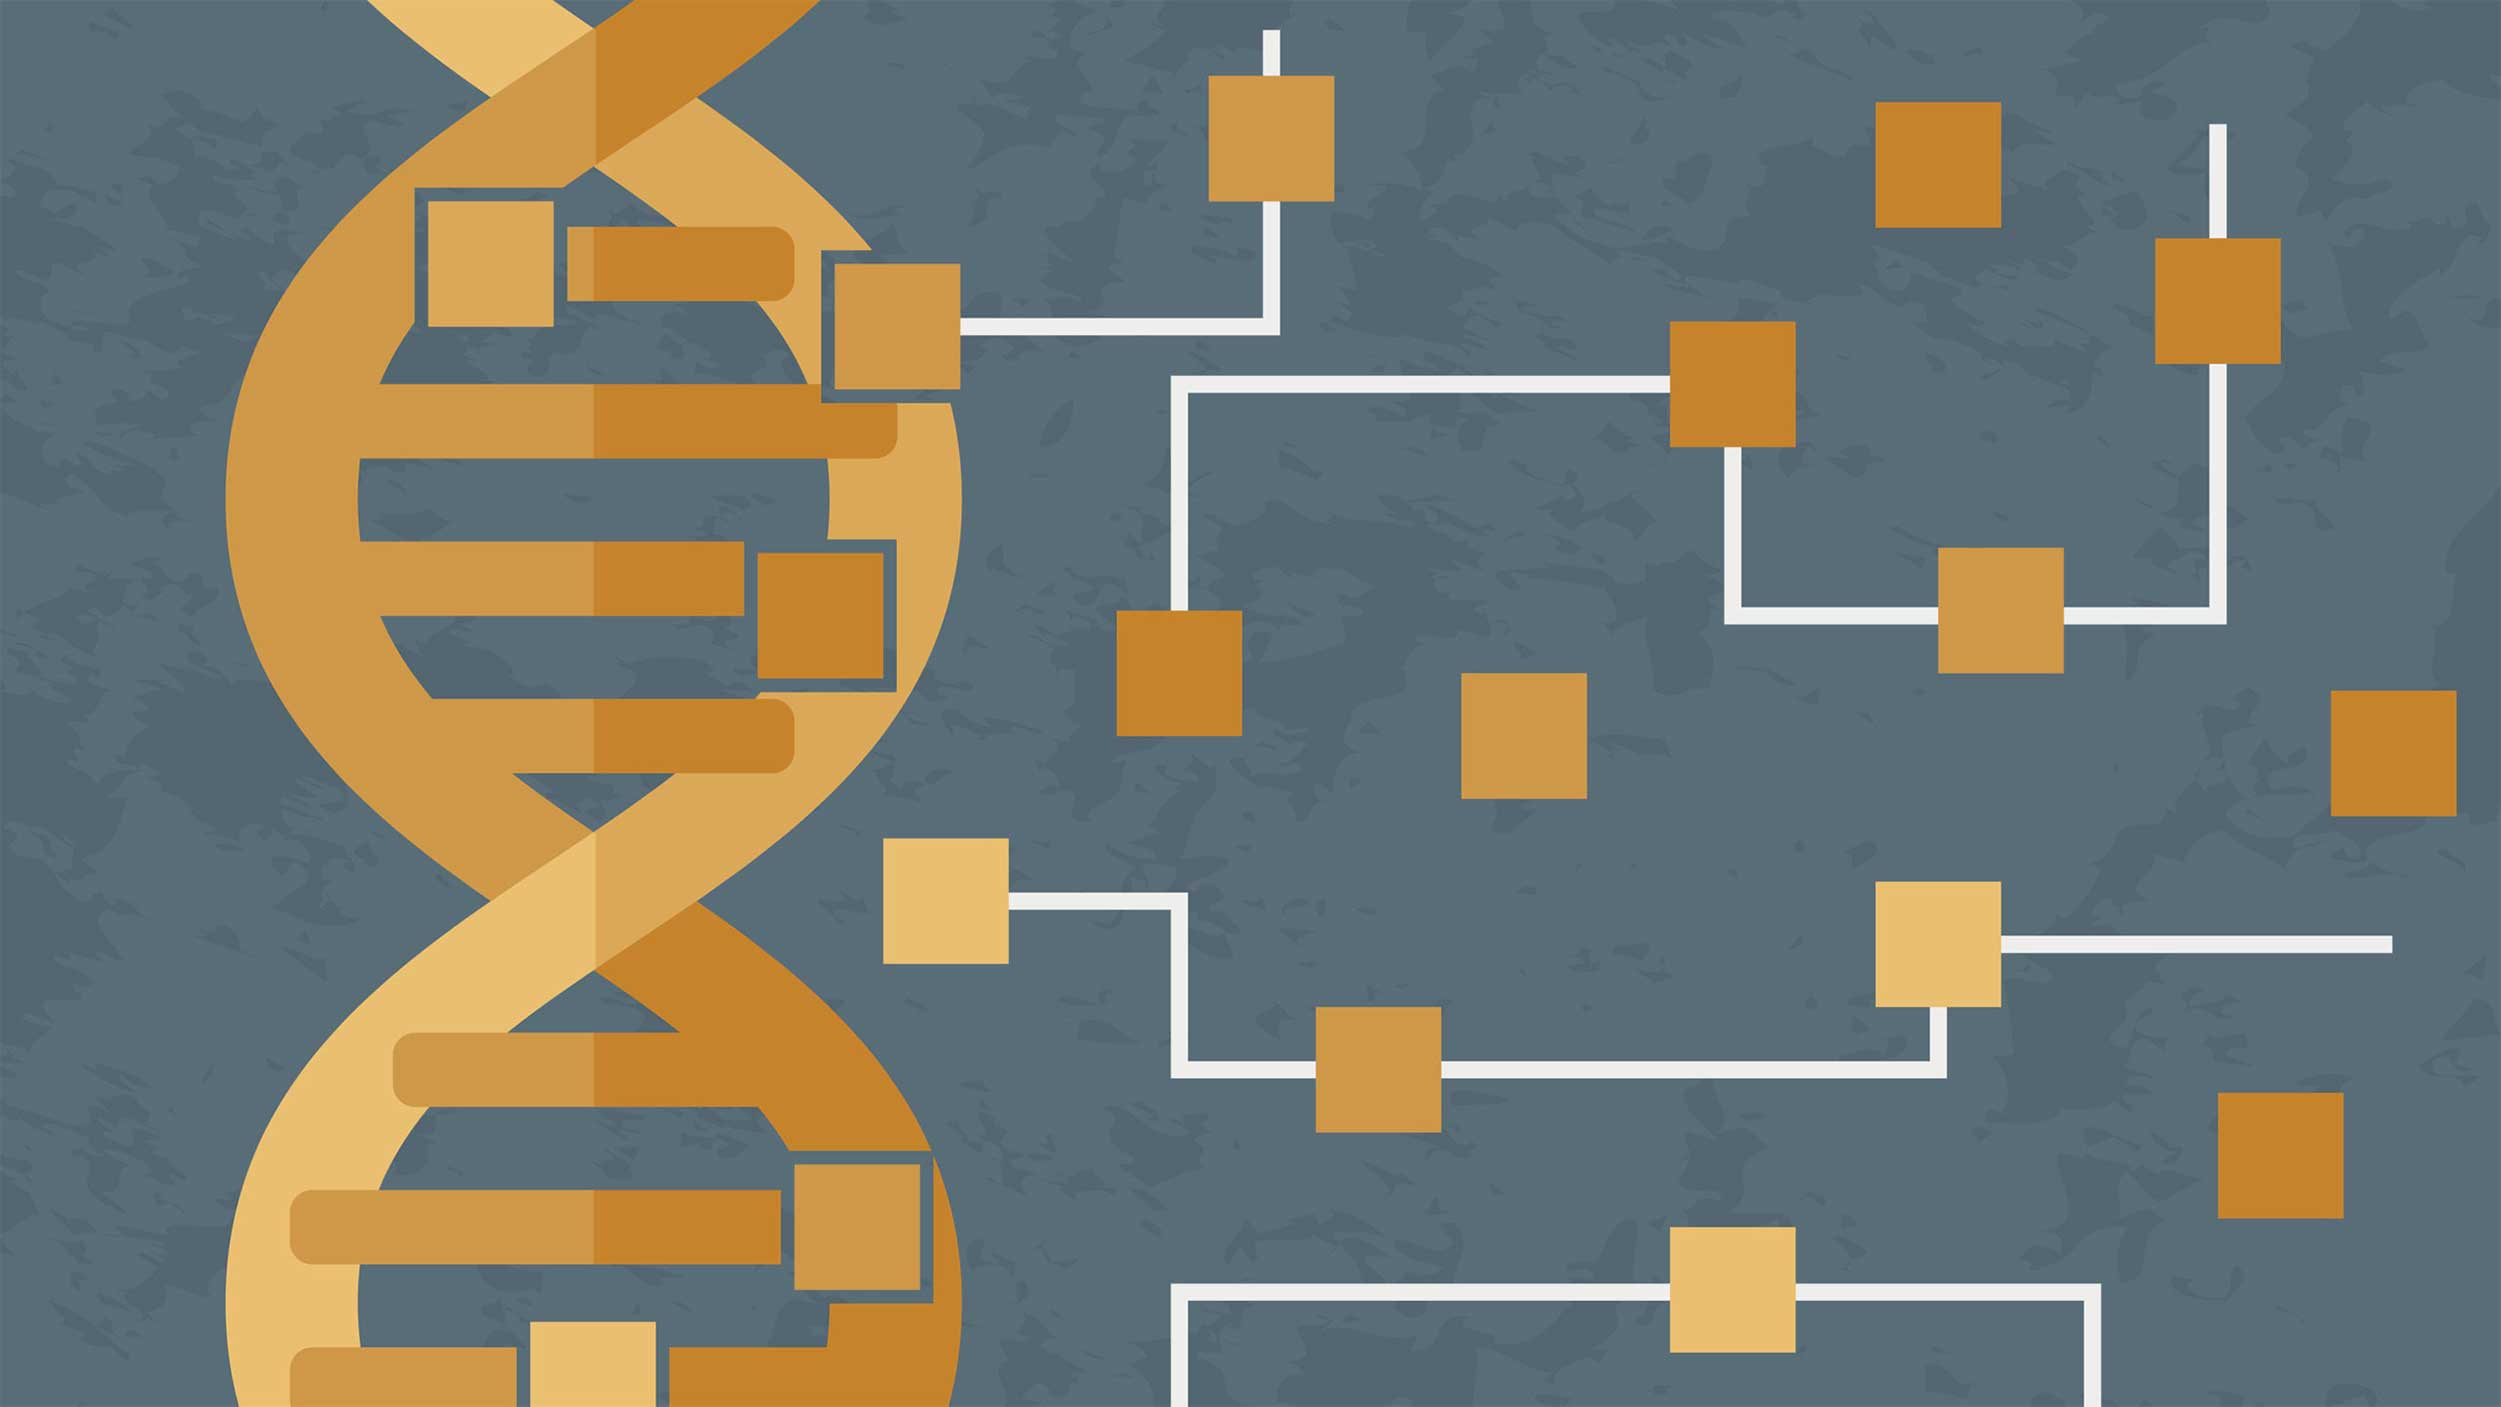 stylized graphic of a DNA strand